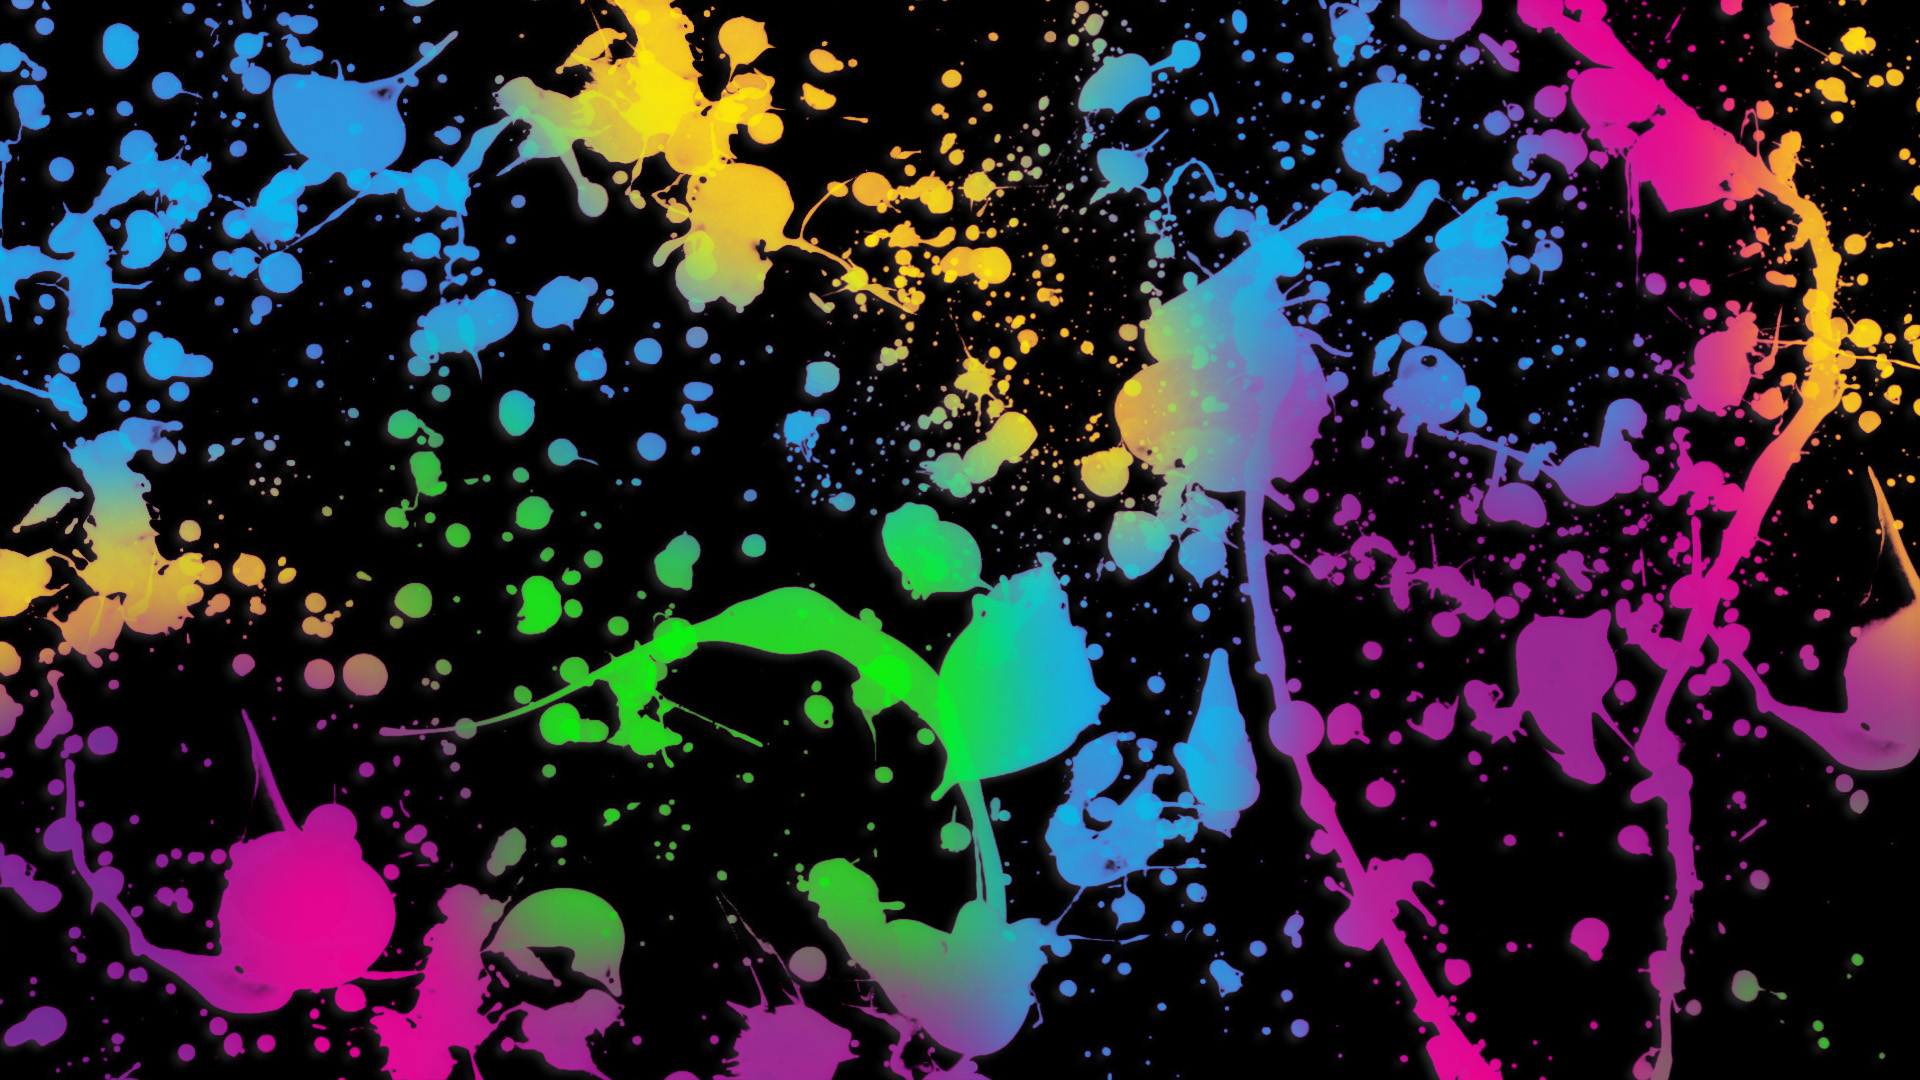 Splatter Wallpaper 22422